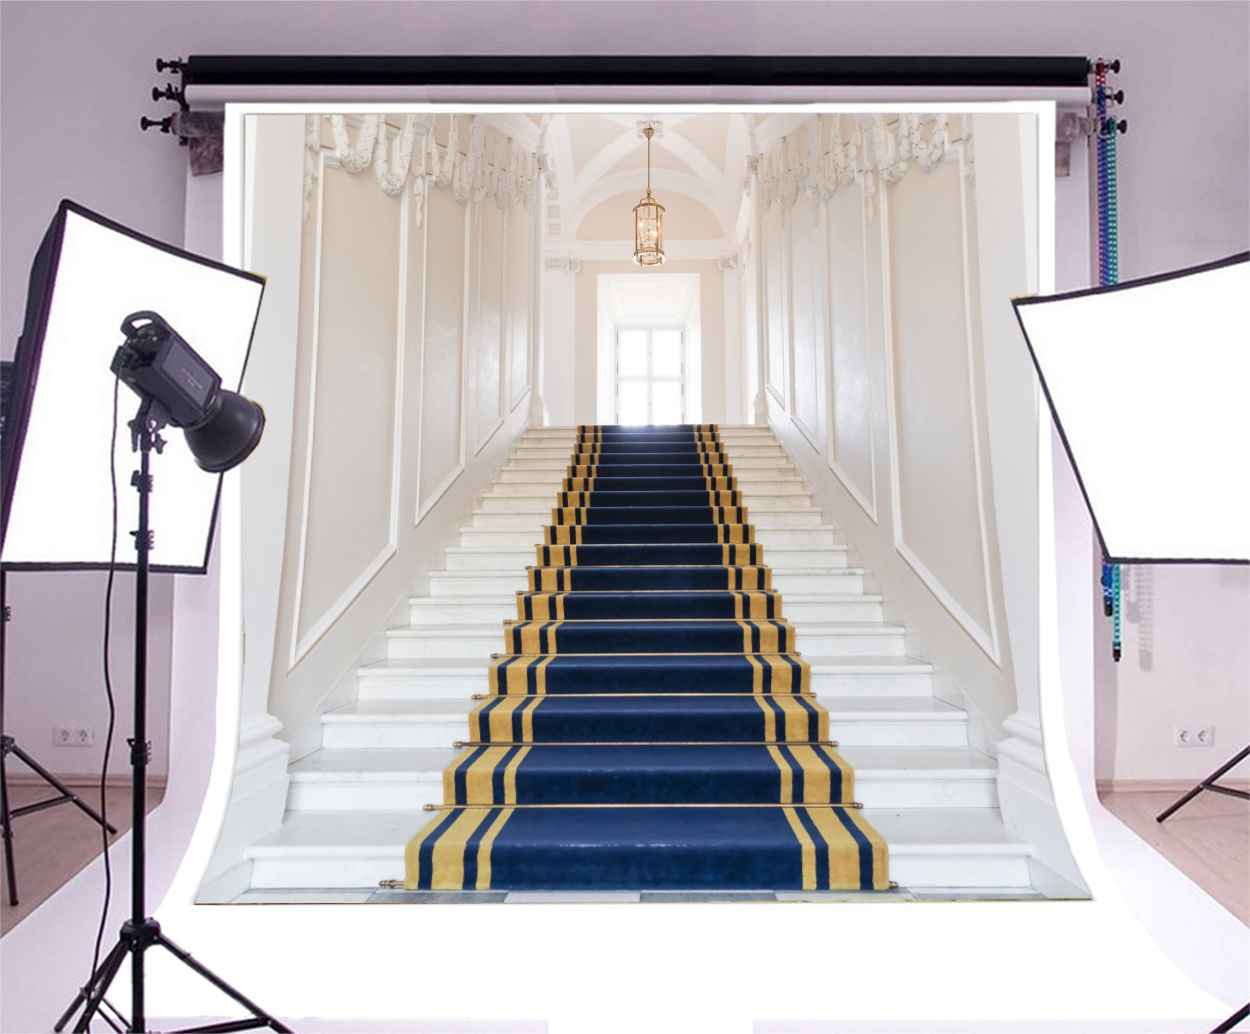 8x8ft Blue White Stairs Indoor Backdrop Studio Photography